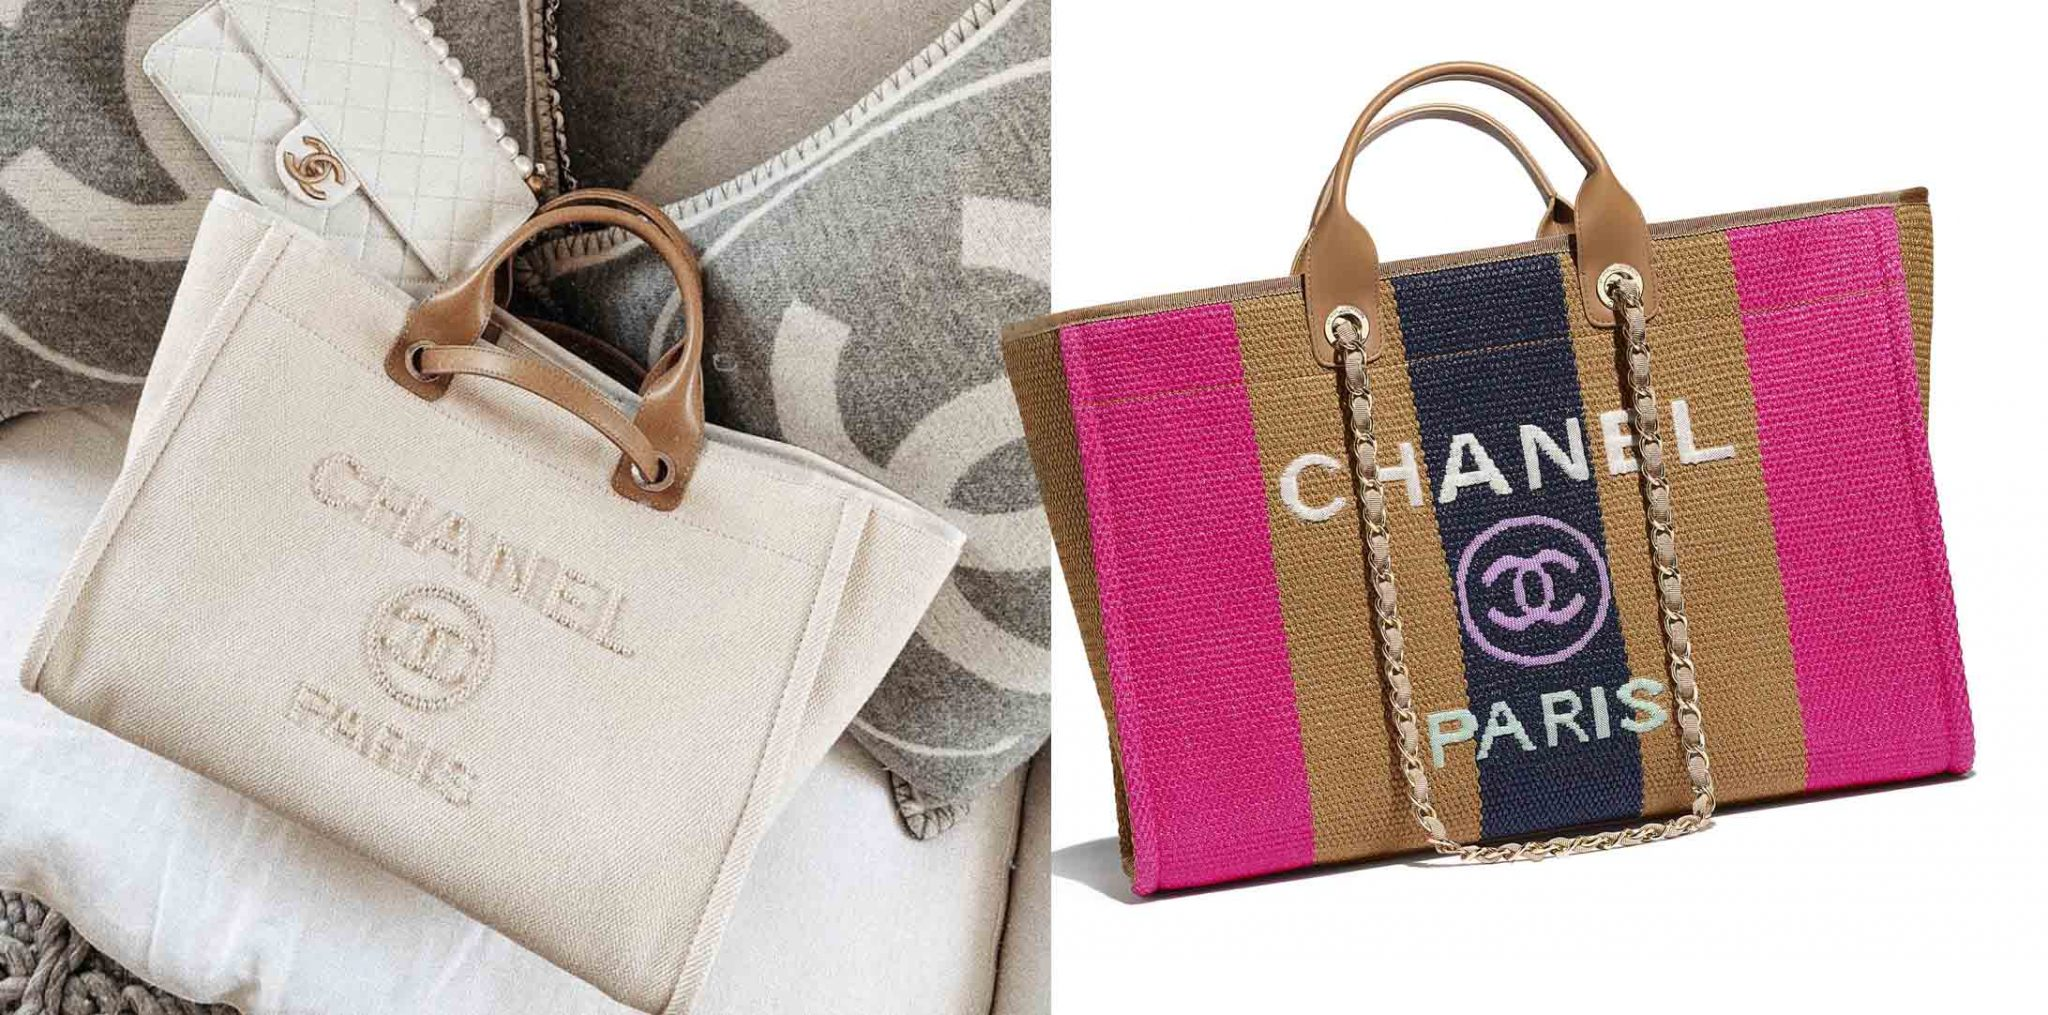 Chanel Deauville Tote Bag The Complete Guide Size and Price